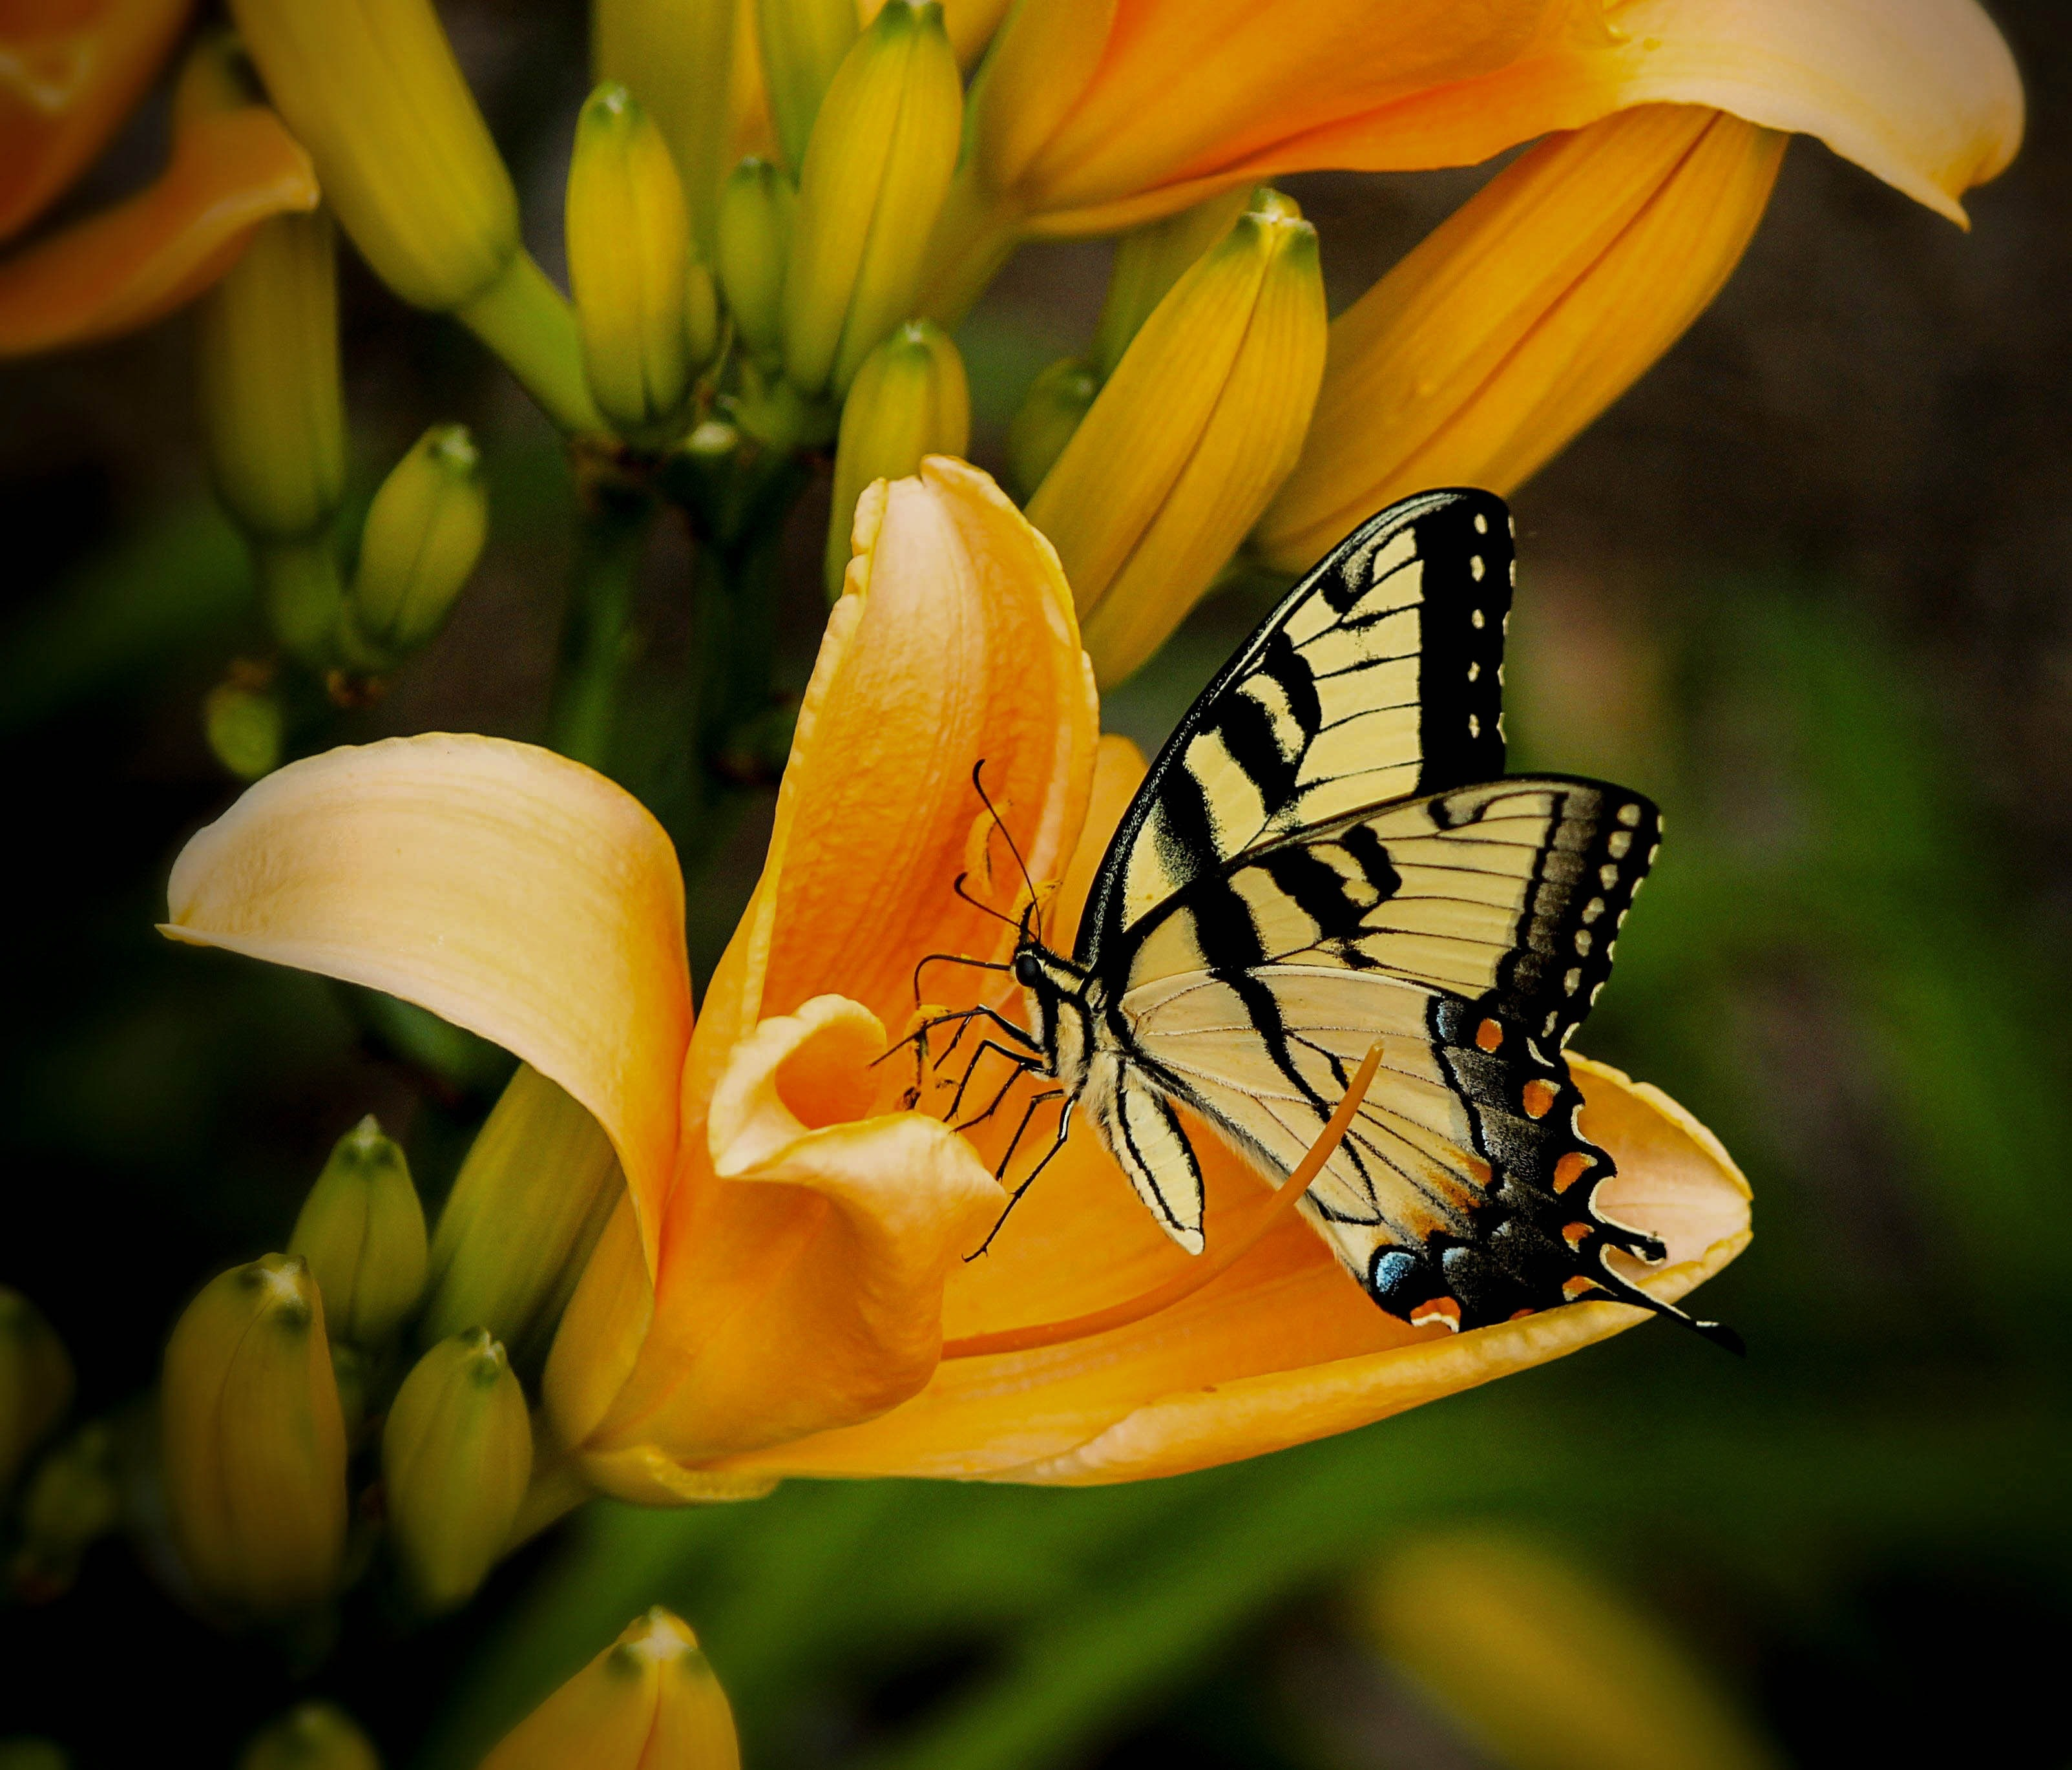 bloom-butterfly-close-up-67811